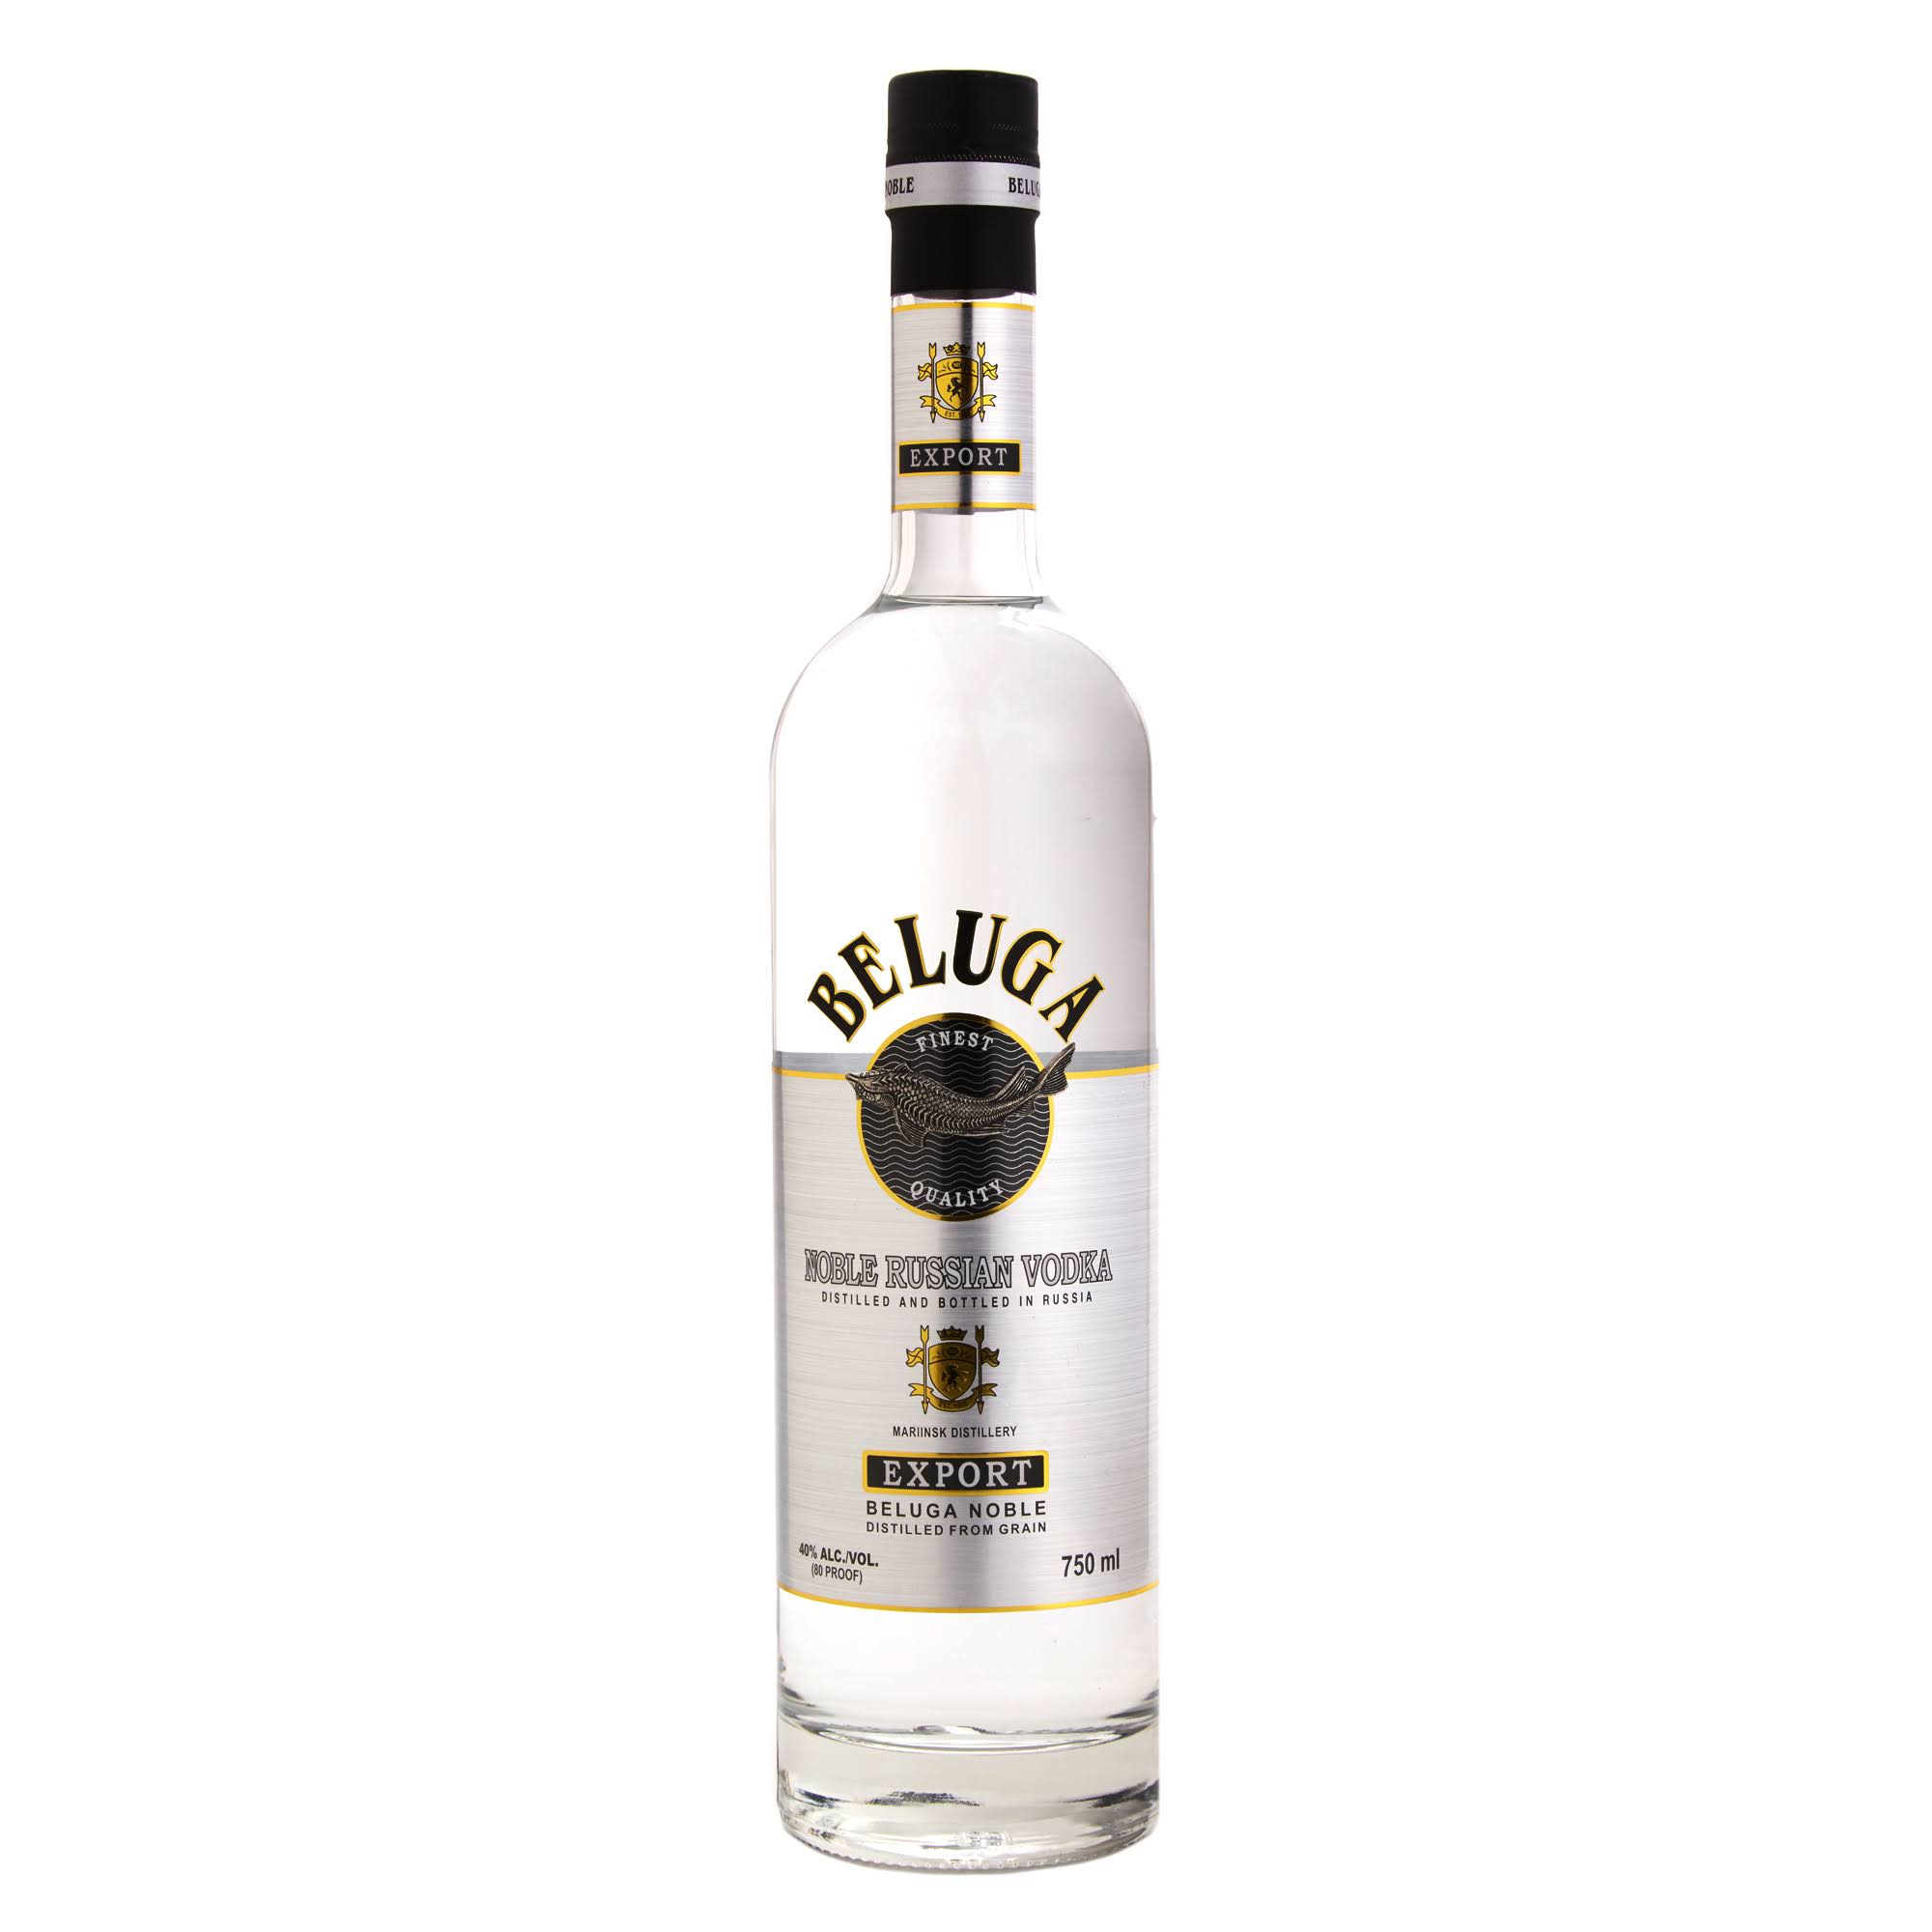 Beluga Noble Russian Vodka - 750 ml bottle